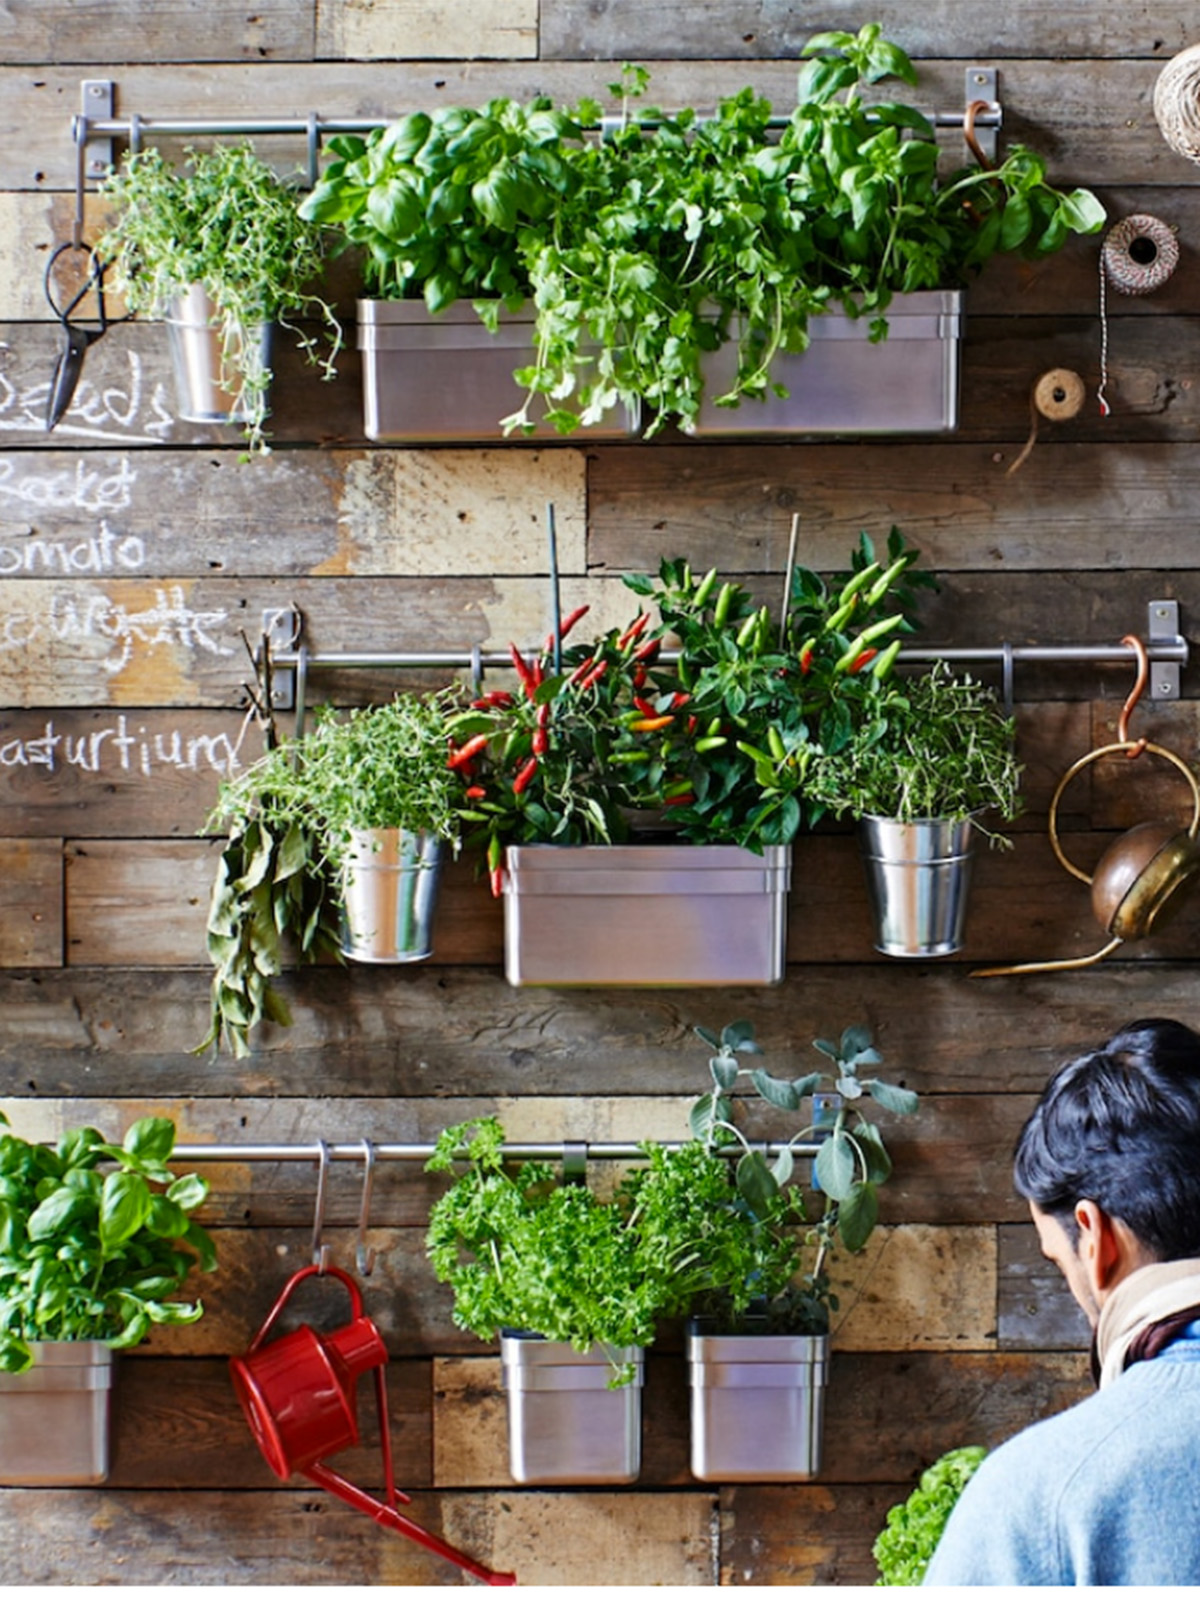 Interior Designers Sophie Robinson talks kitchen update with an Ikea living wall on rustic wooden wall